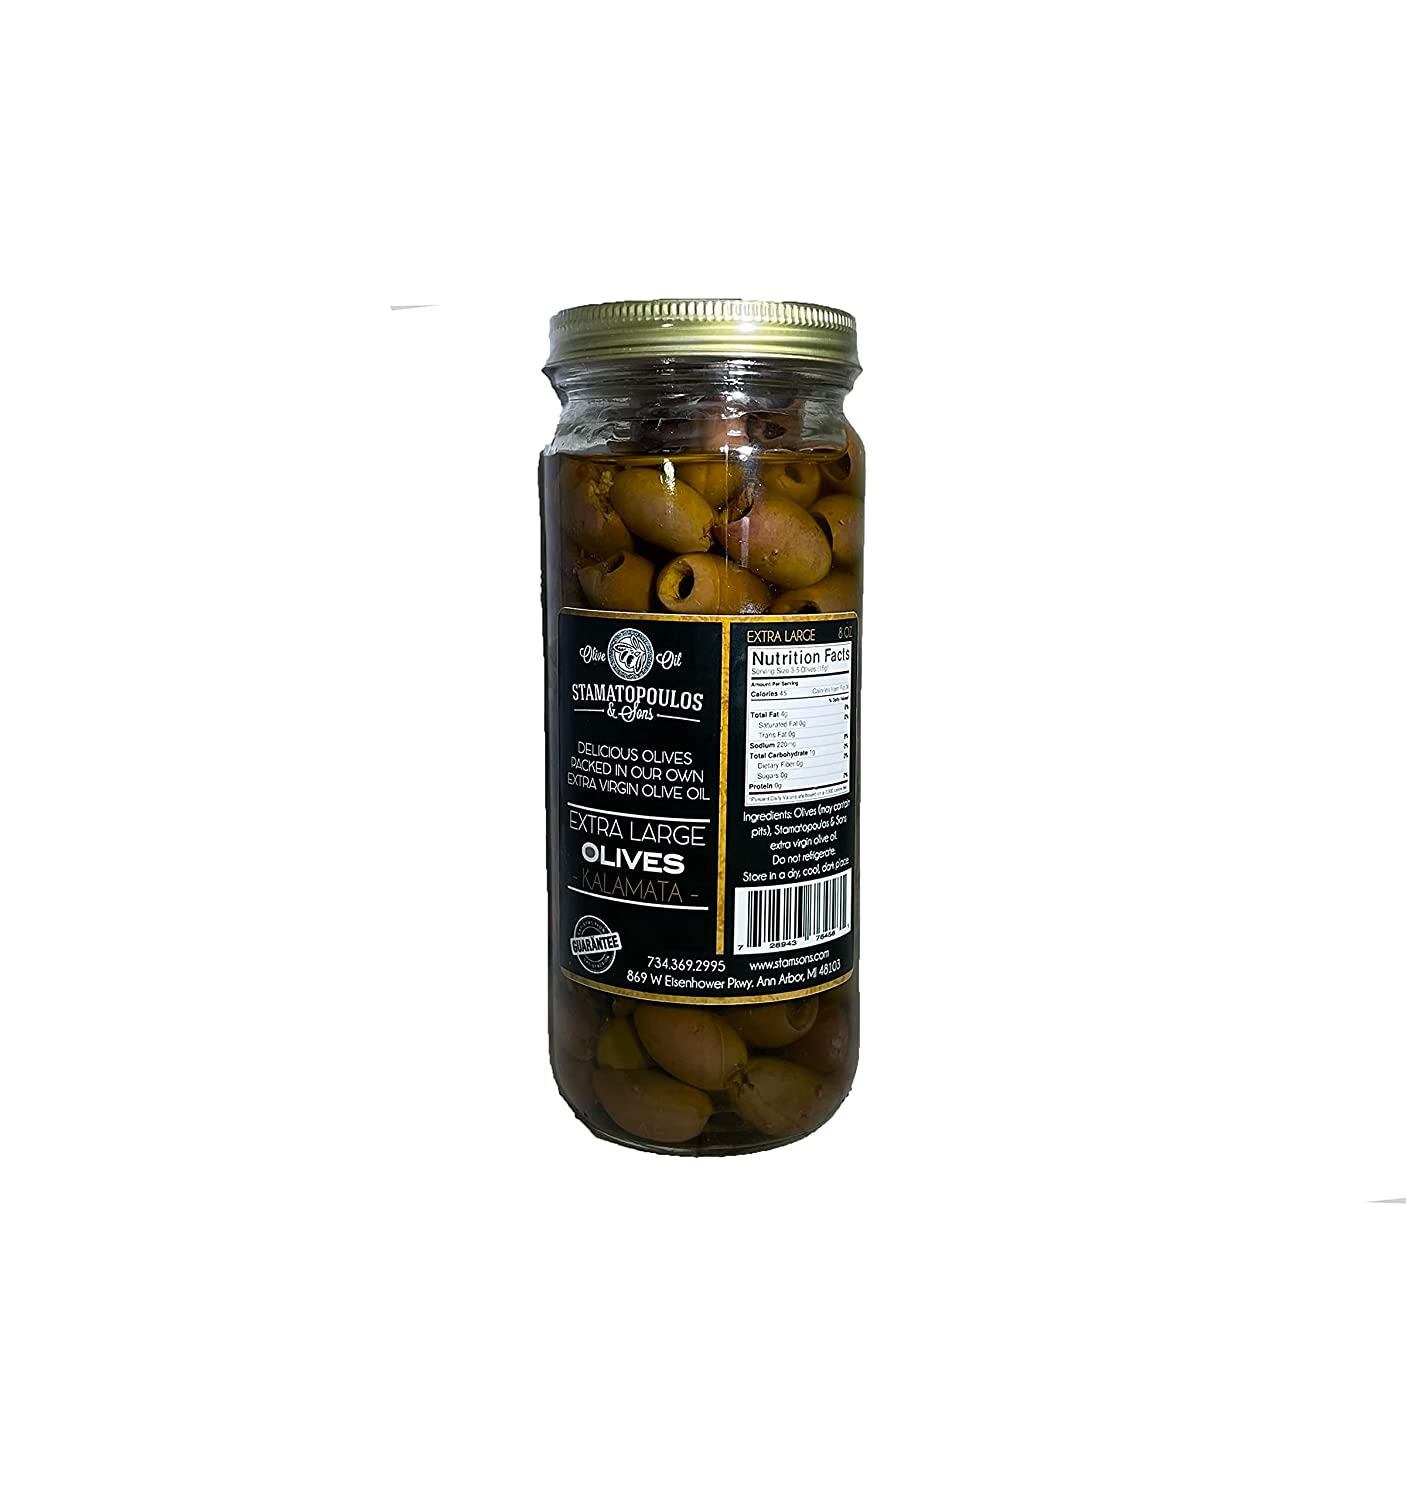 Max 69% OFF Stamatopoulos Sons Challenge the lowest price of Japan Pitted Kalamata Olives Marinated Certifi in